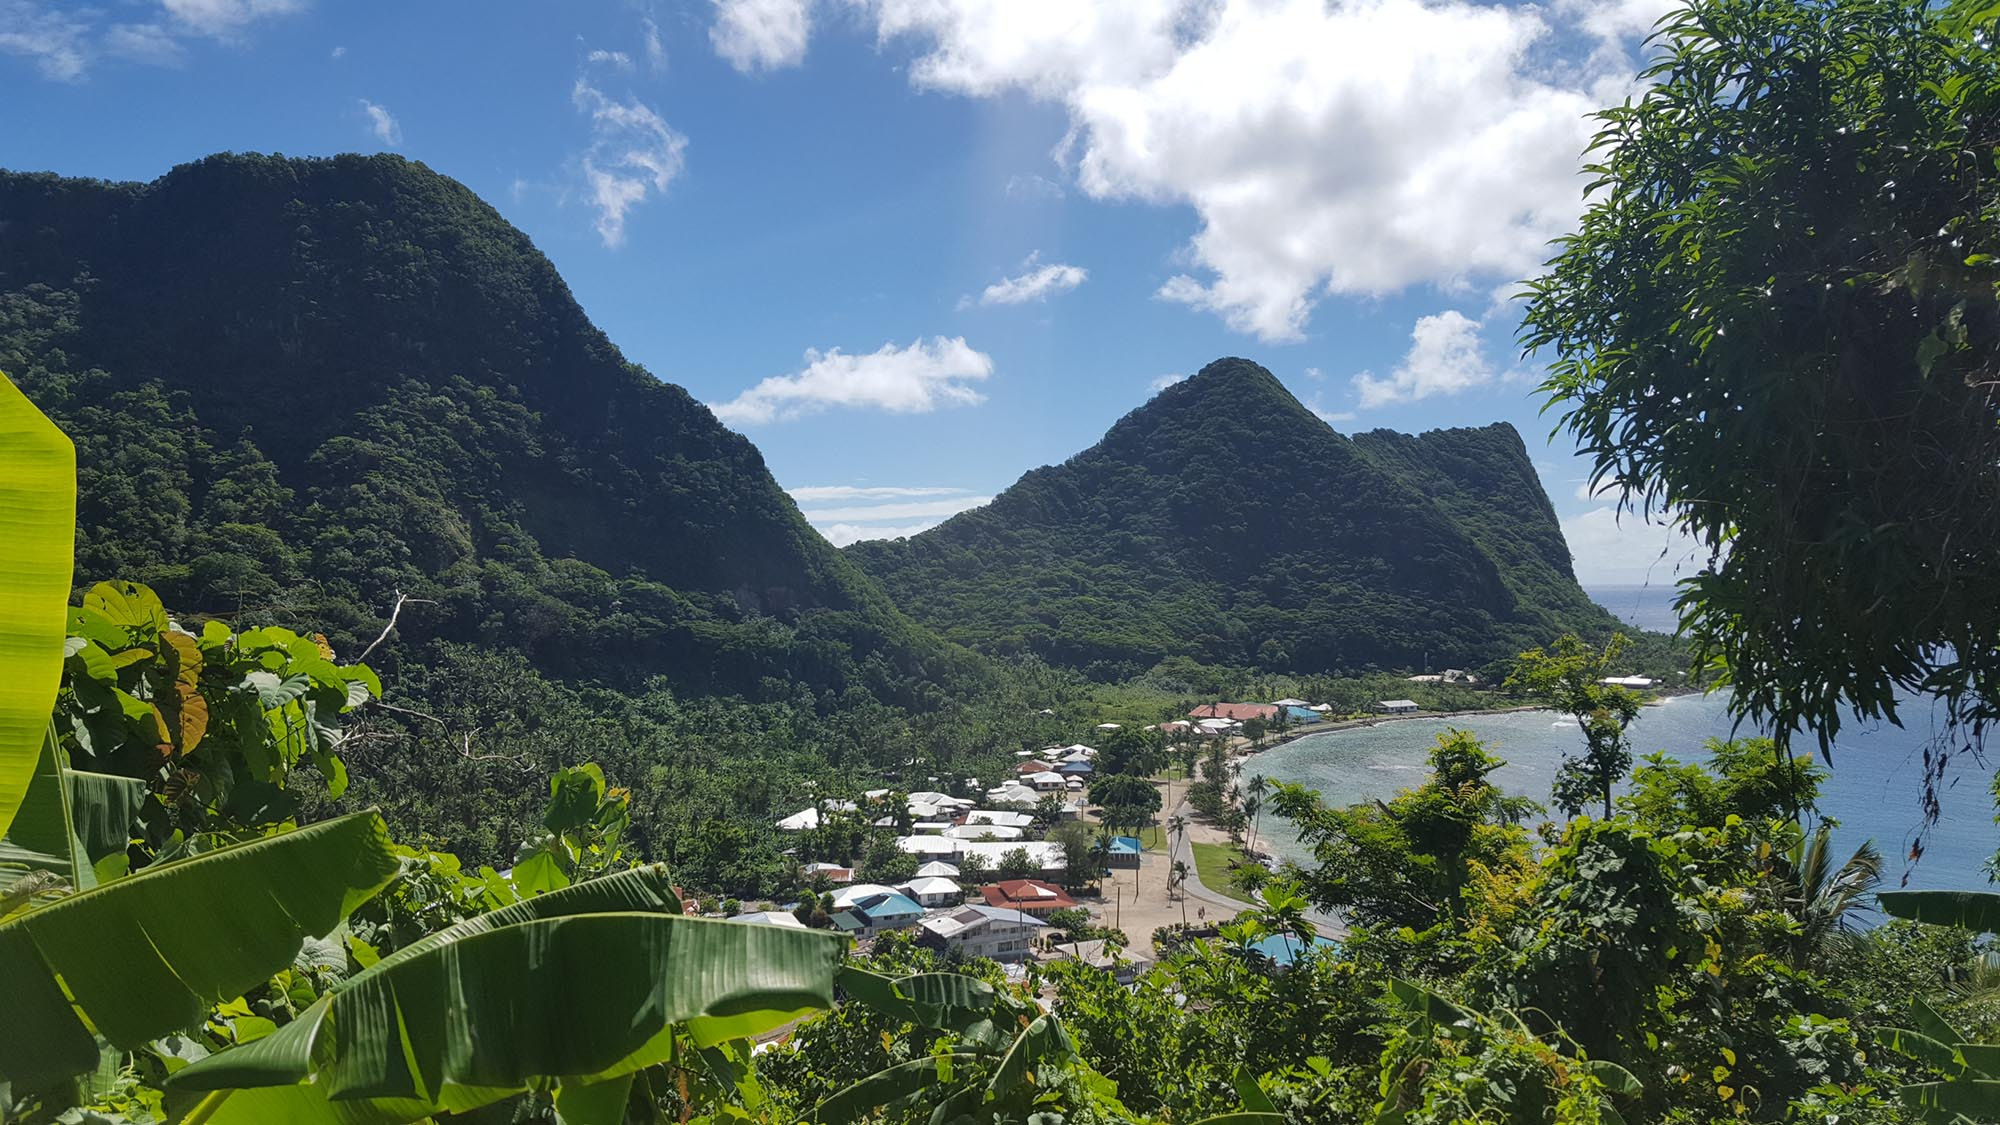 National Park of the American Samoa